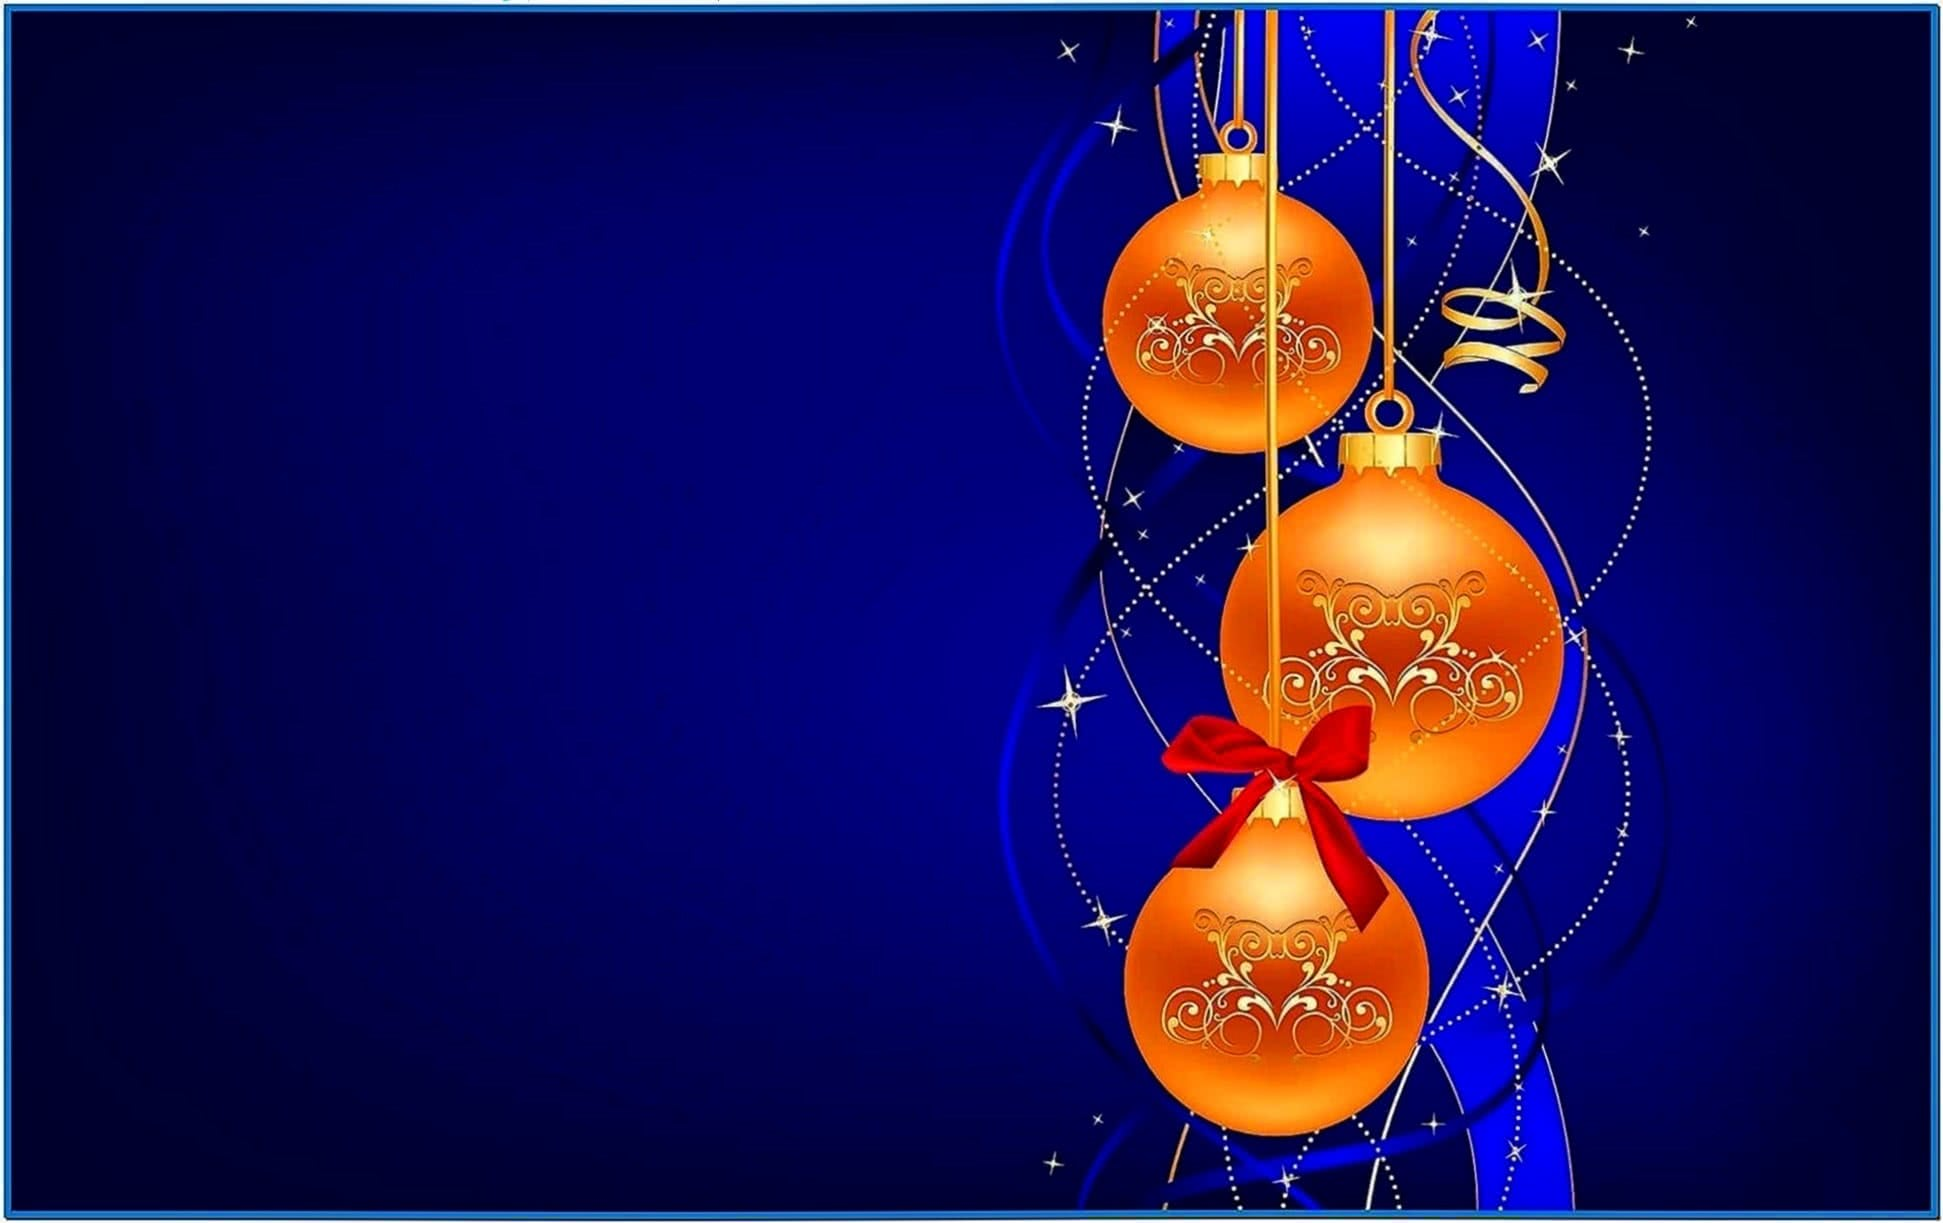 Merry Christmas Screensaver Windows 7